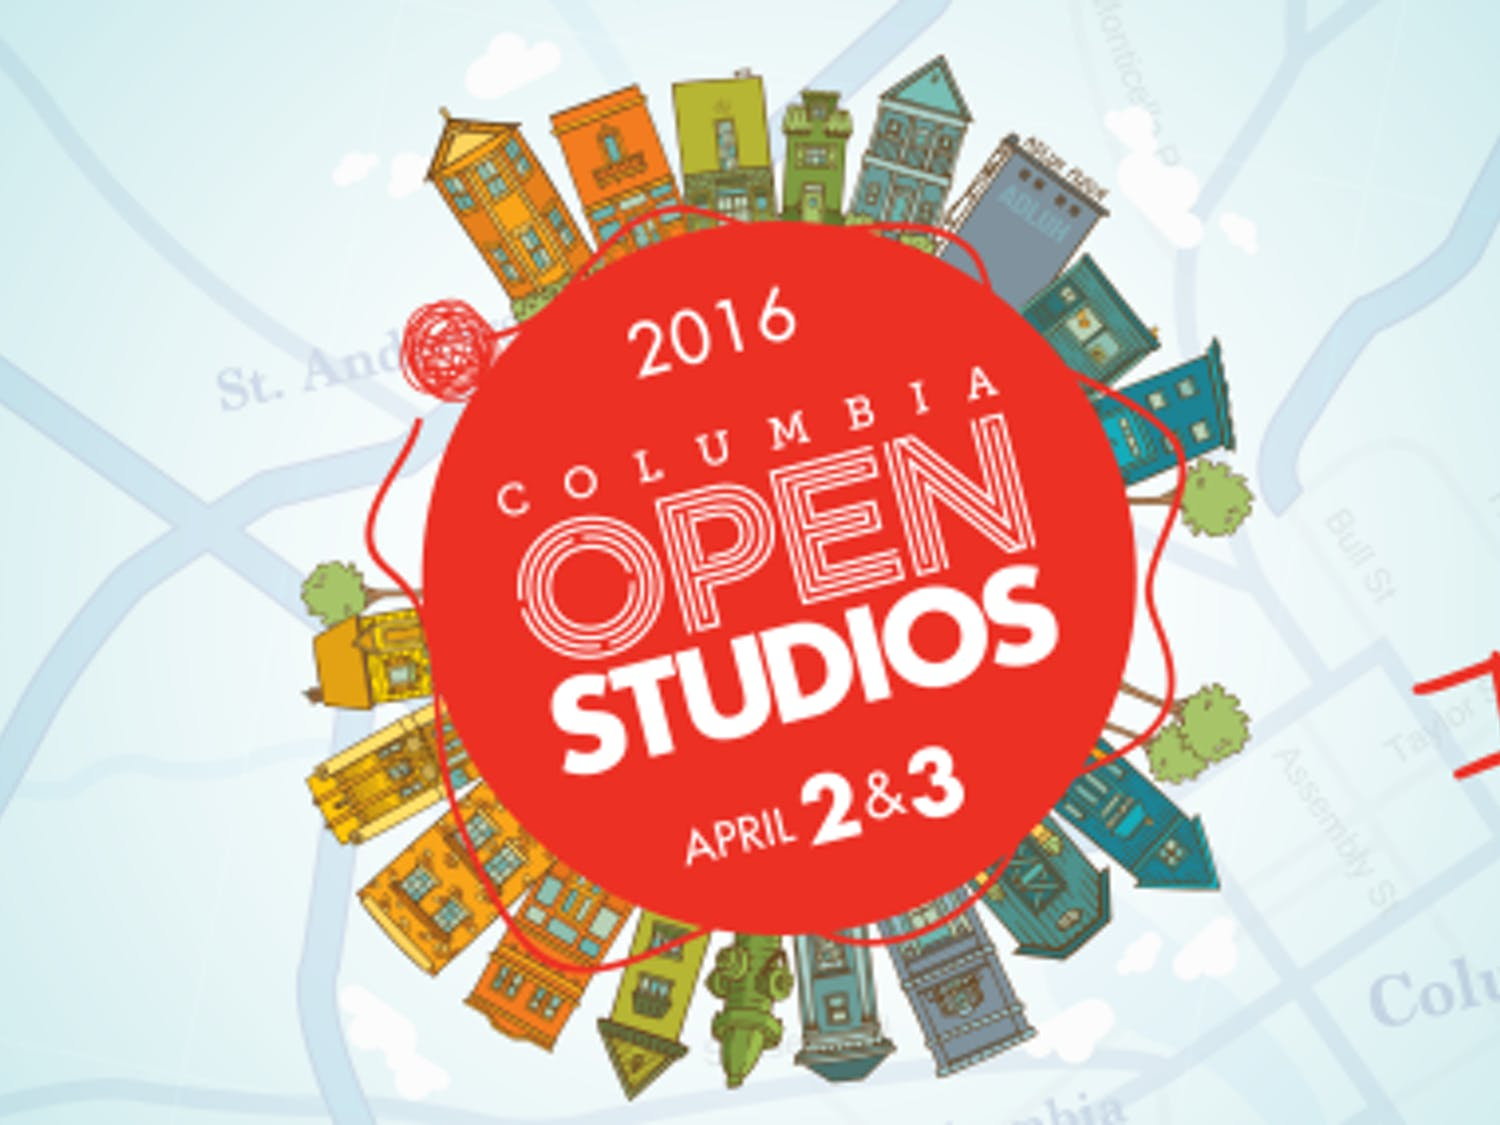 Columbia Open Studios, hosted by 701 Center for Contemporary Art, solidifies the artistic presence in the city, teaching the community the importance and prevalence of art.